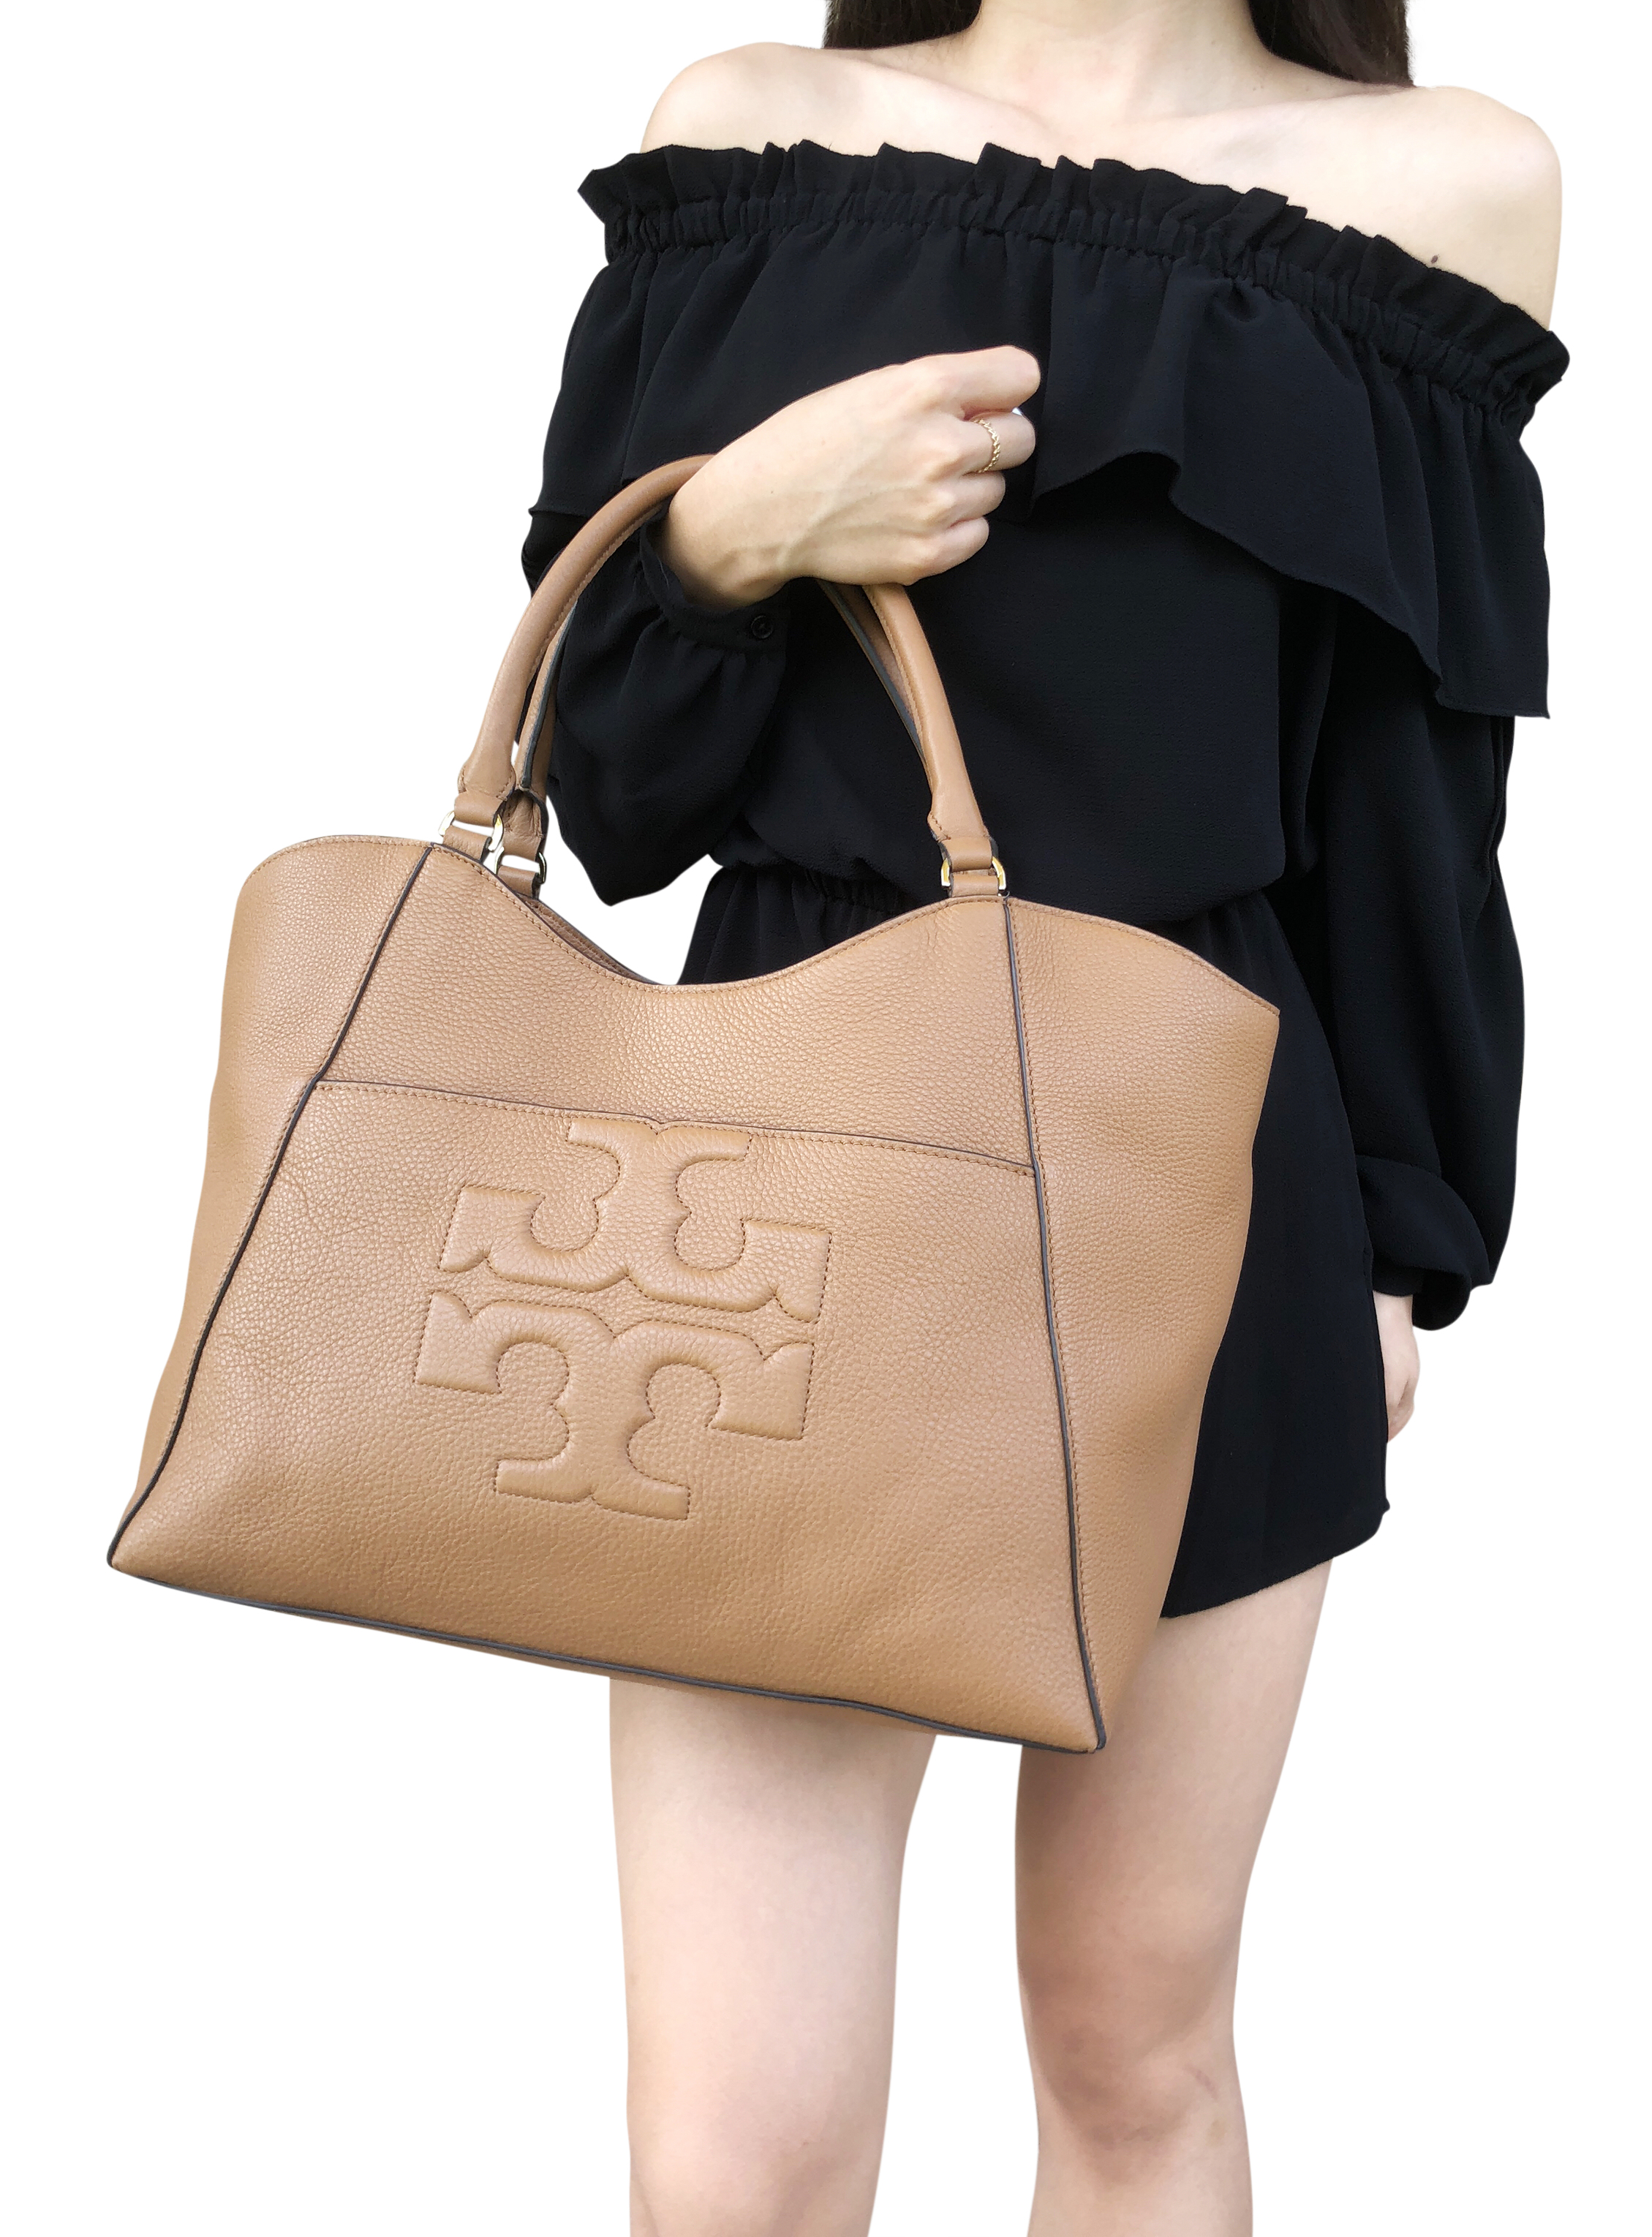 Details about Tory Burch Bombe T Large East West Tote Bag Bark Tan Pebble  Leather 60f84edd1a342